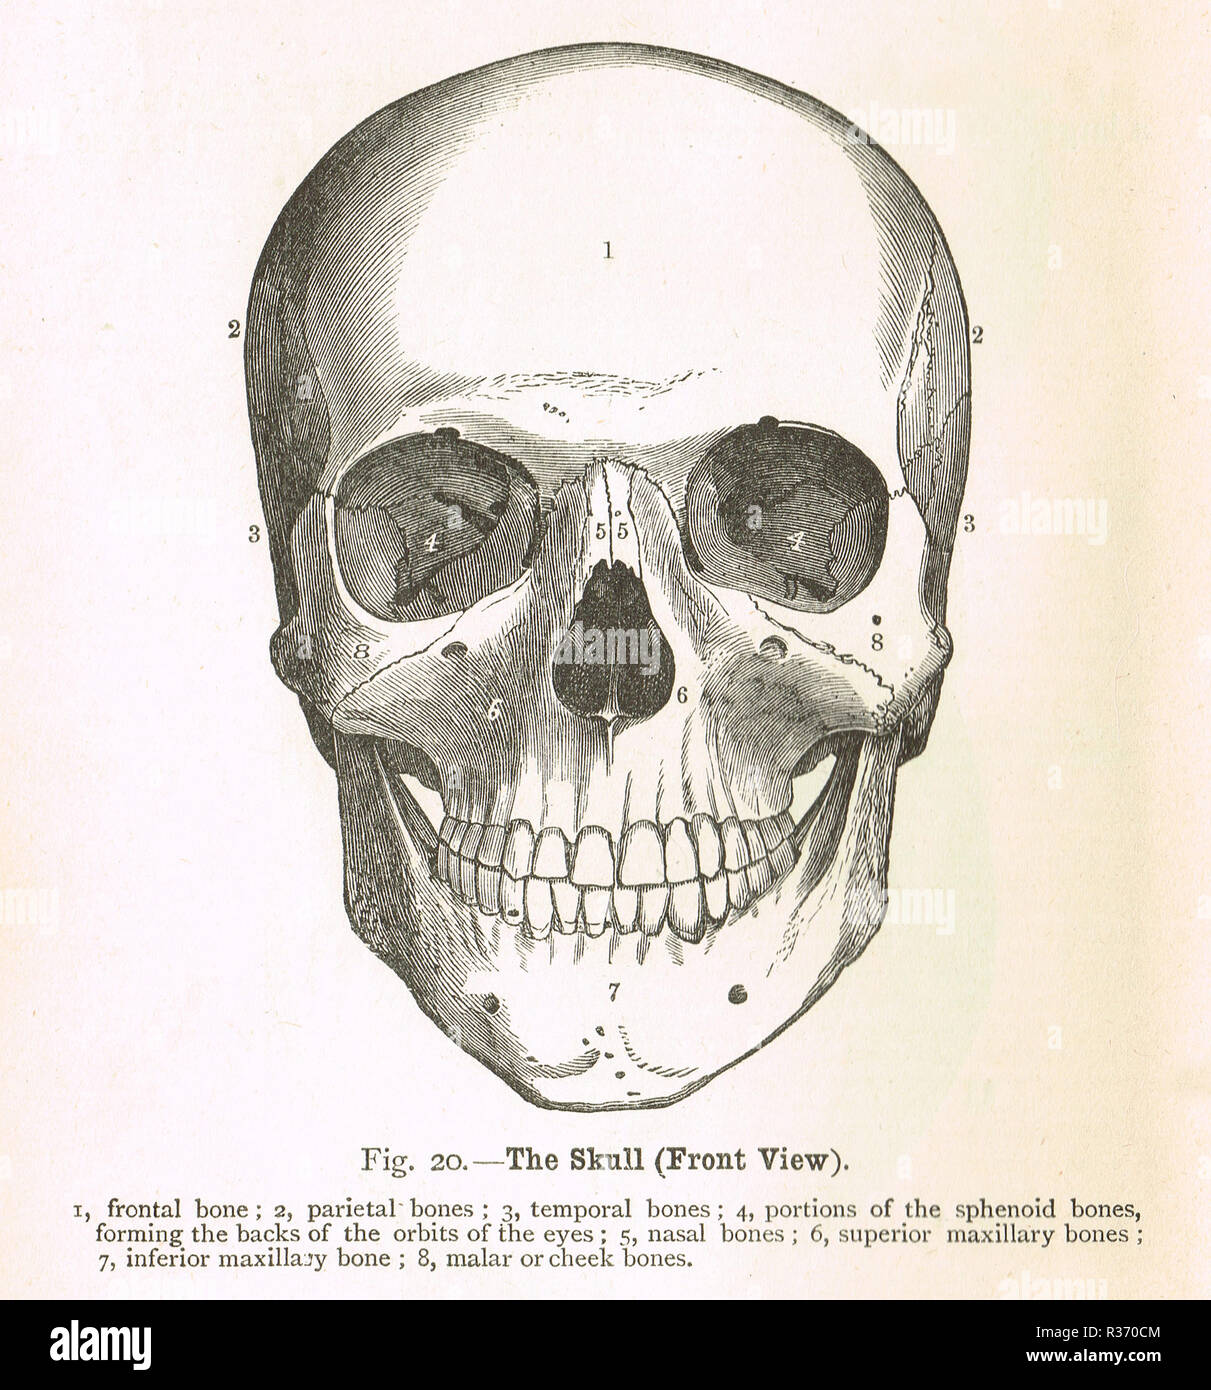 Human Skull Front View A 19th Century Illustration Stock Photo